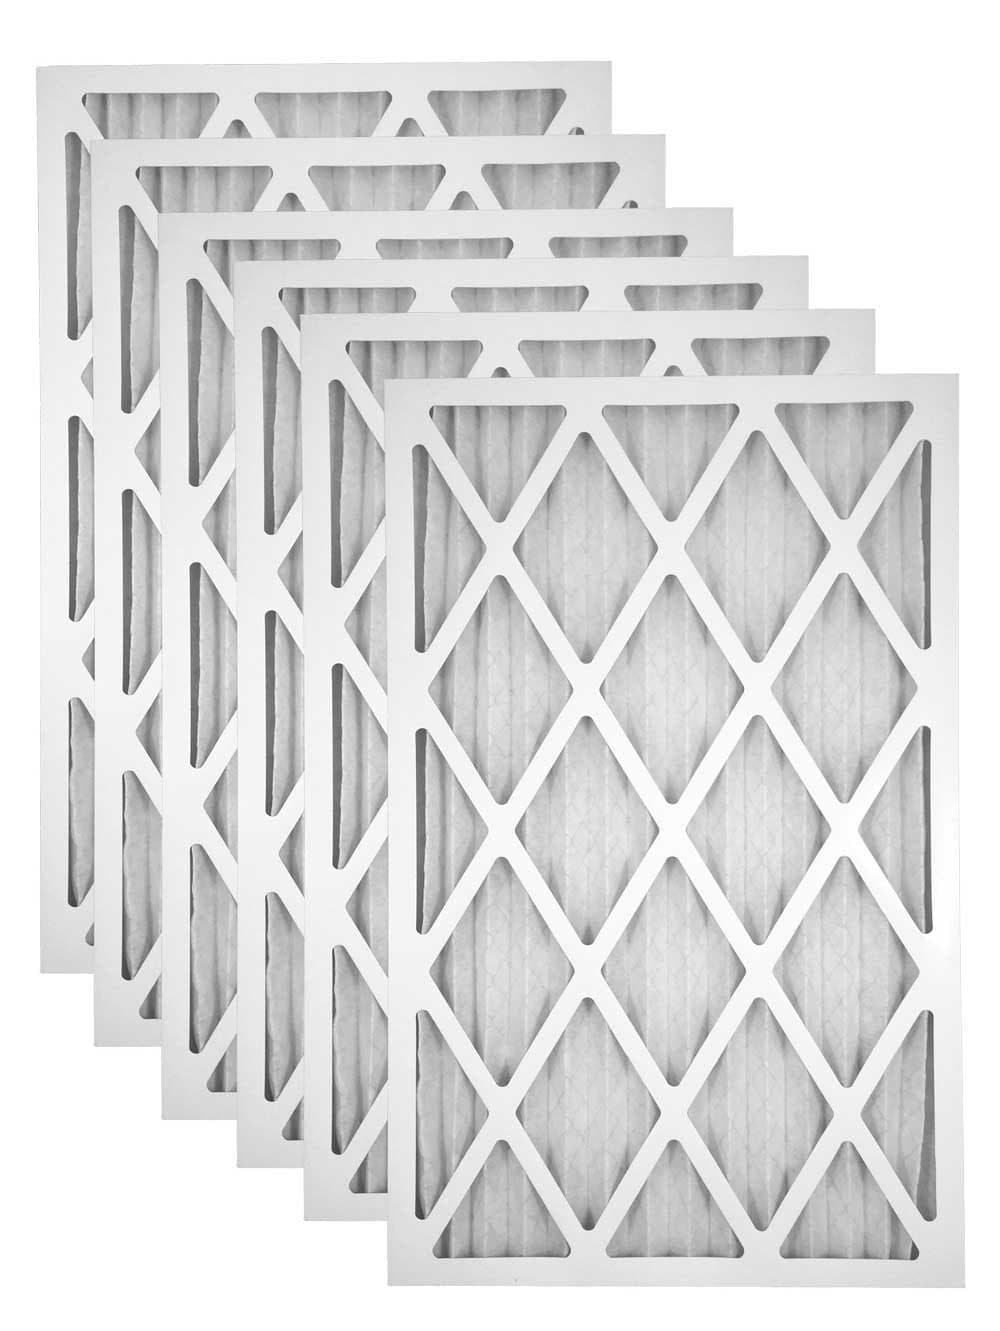 12x18x1 Merv 13 AC Furnace Filter - Case of 6